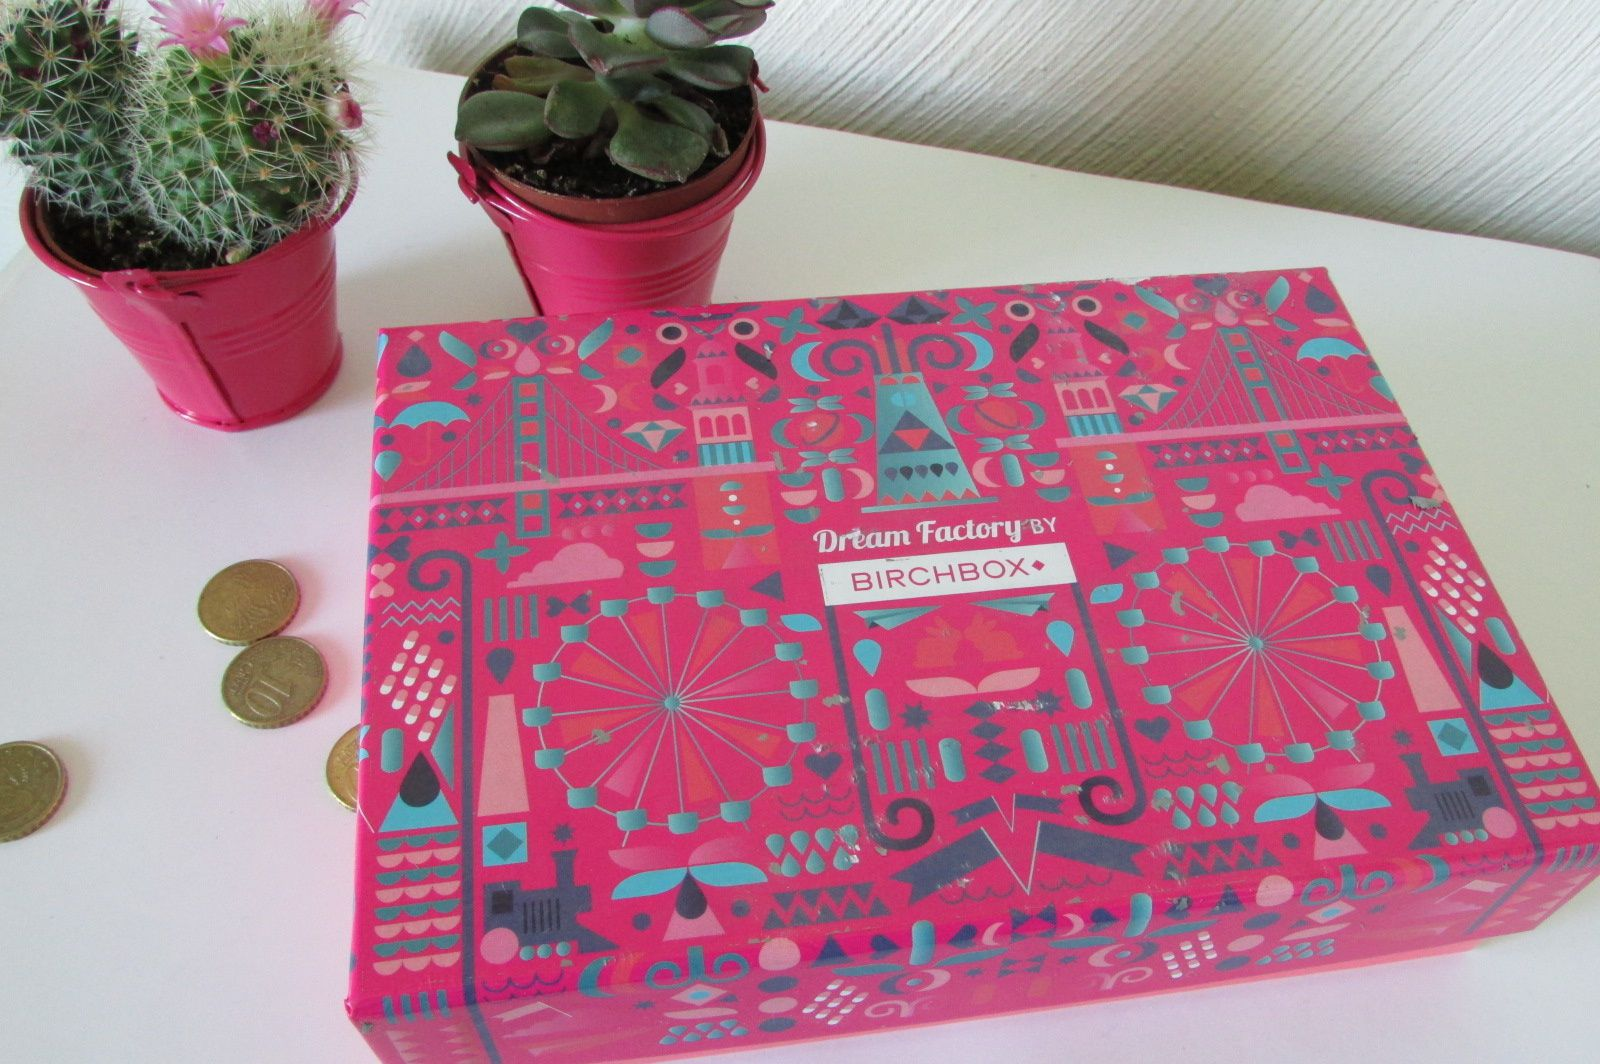 Birchbox &quot&#x3B;Dream fractory&quot&#x3B; #Mai 2016 (+ commande)